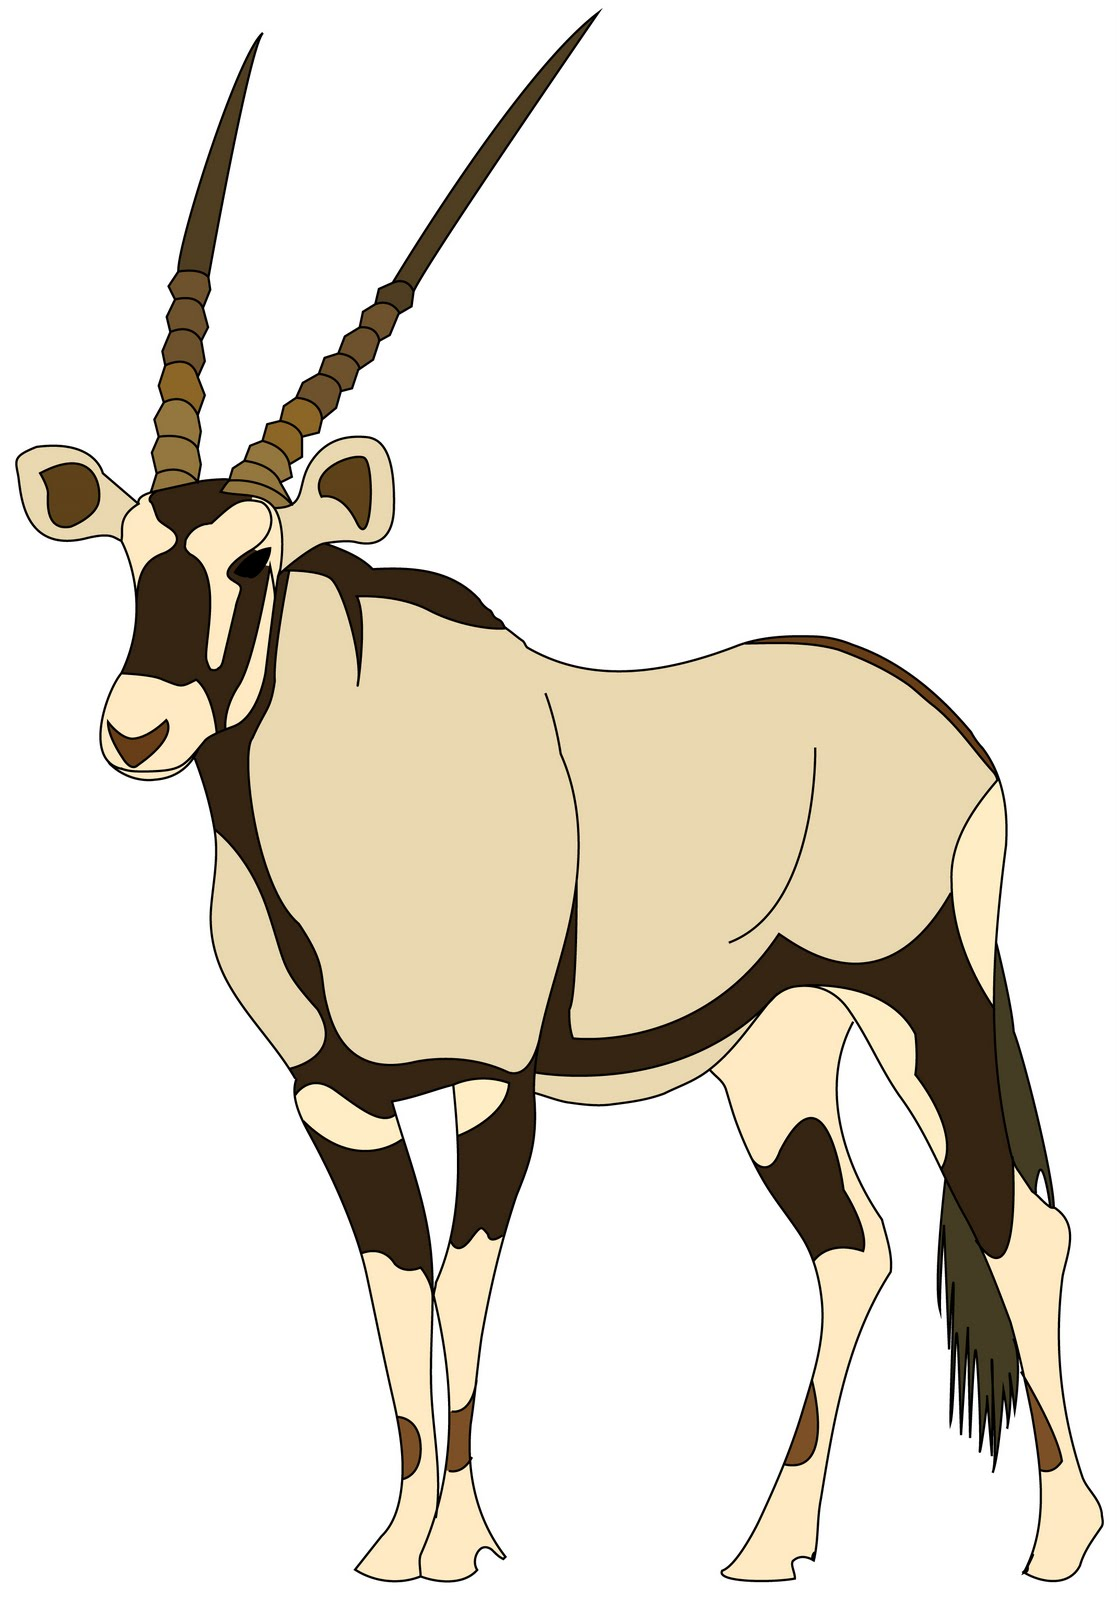 clipart springbok - photo #41